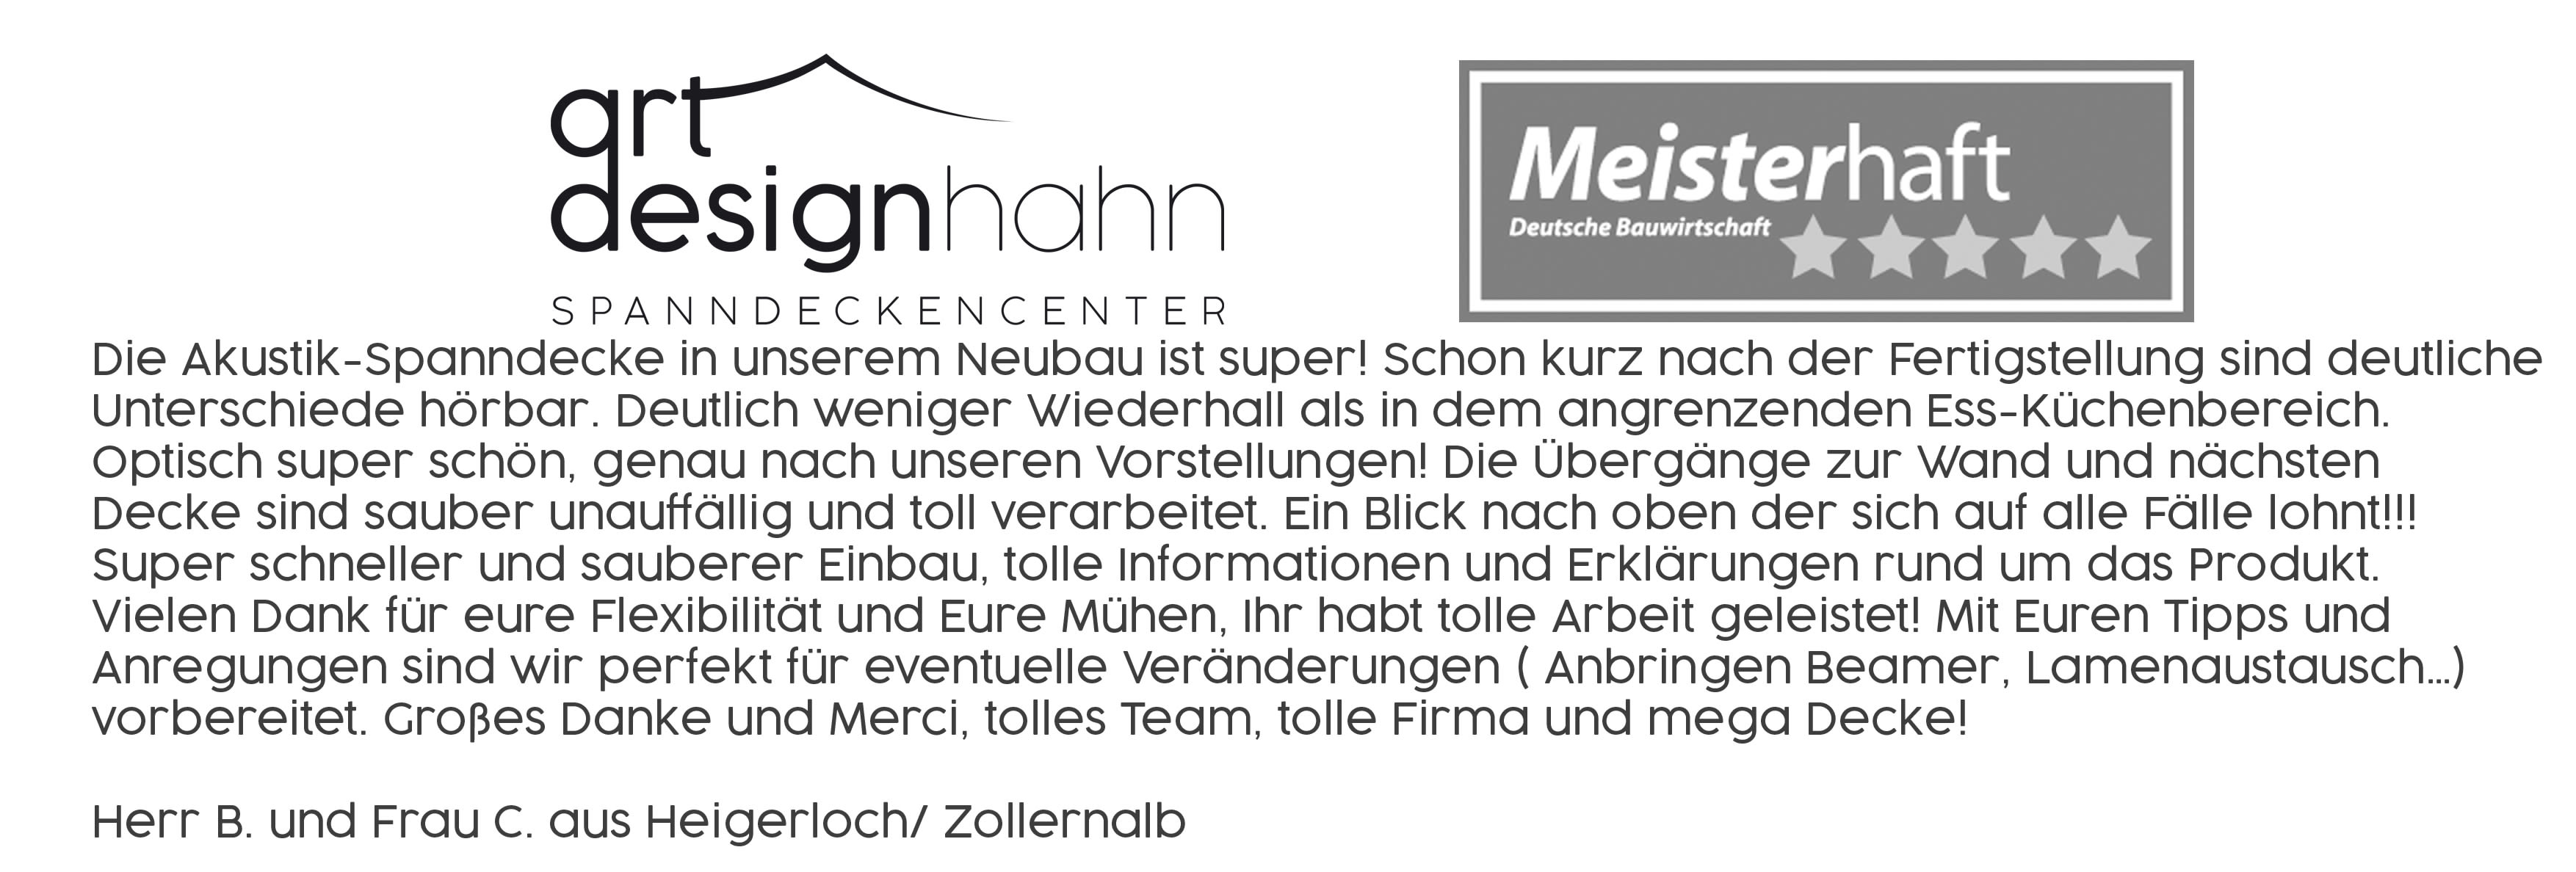 Art Design Hahn Meisterhafte Rezension 12